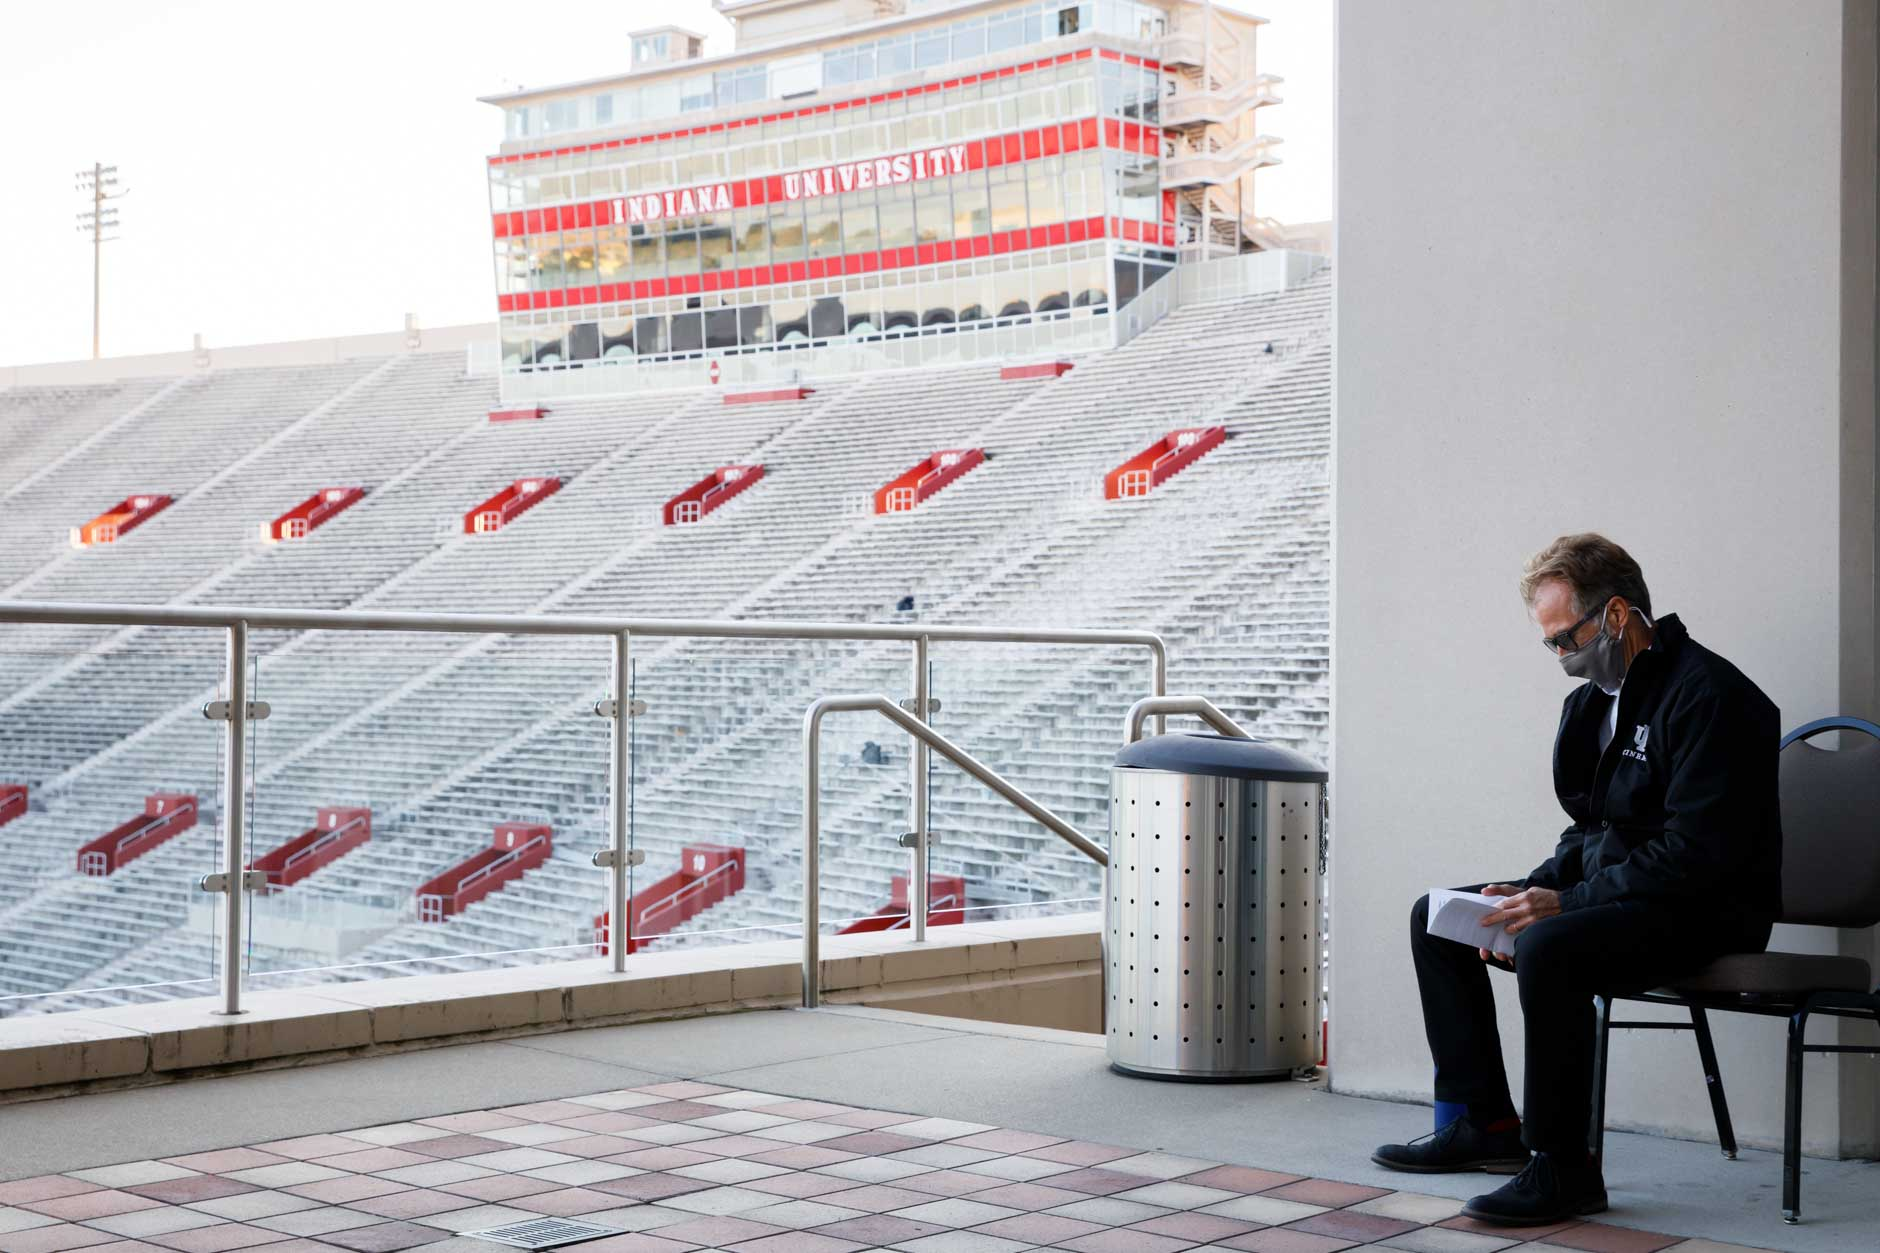 "Indiana University Cinema Director Jon Vickers looks over his notes as he waits to introduce a screening of ""Cinema Paradiso"" in Memorial Stadium at IU Bloomington on Tuesday, Sept. 29, 2020. The film screening was Vickers' final public event as IU Cinema's founding director. (James Brosher/Indiana University)"